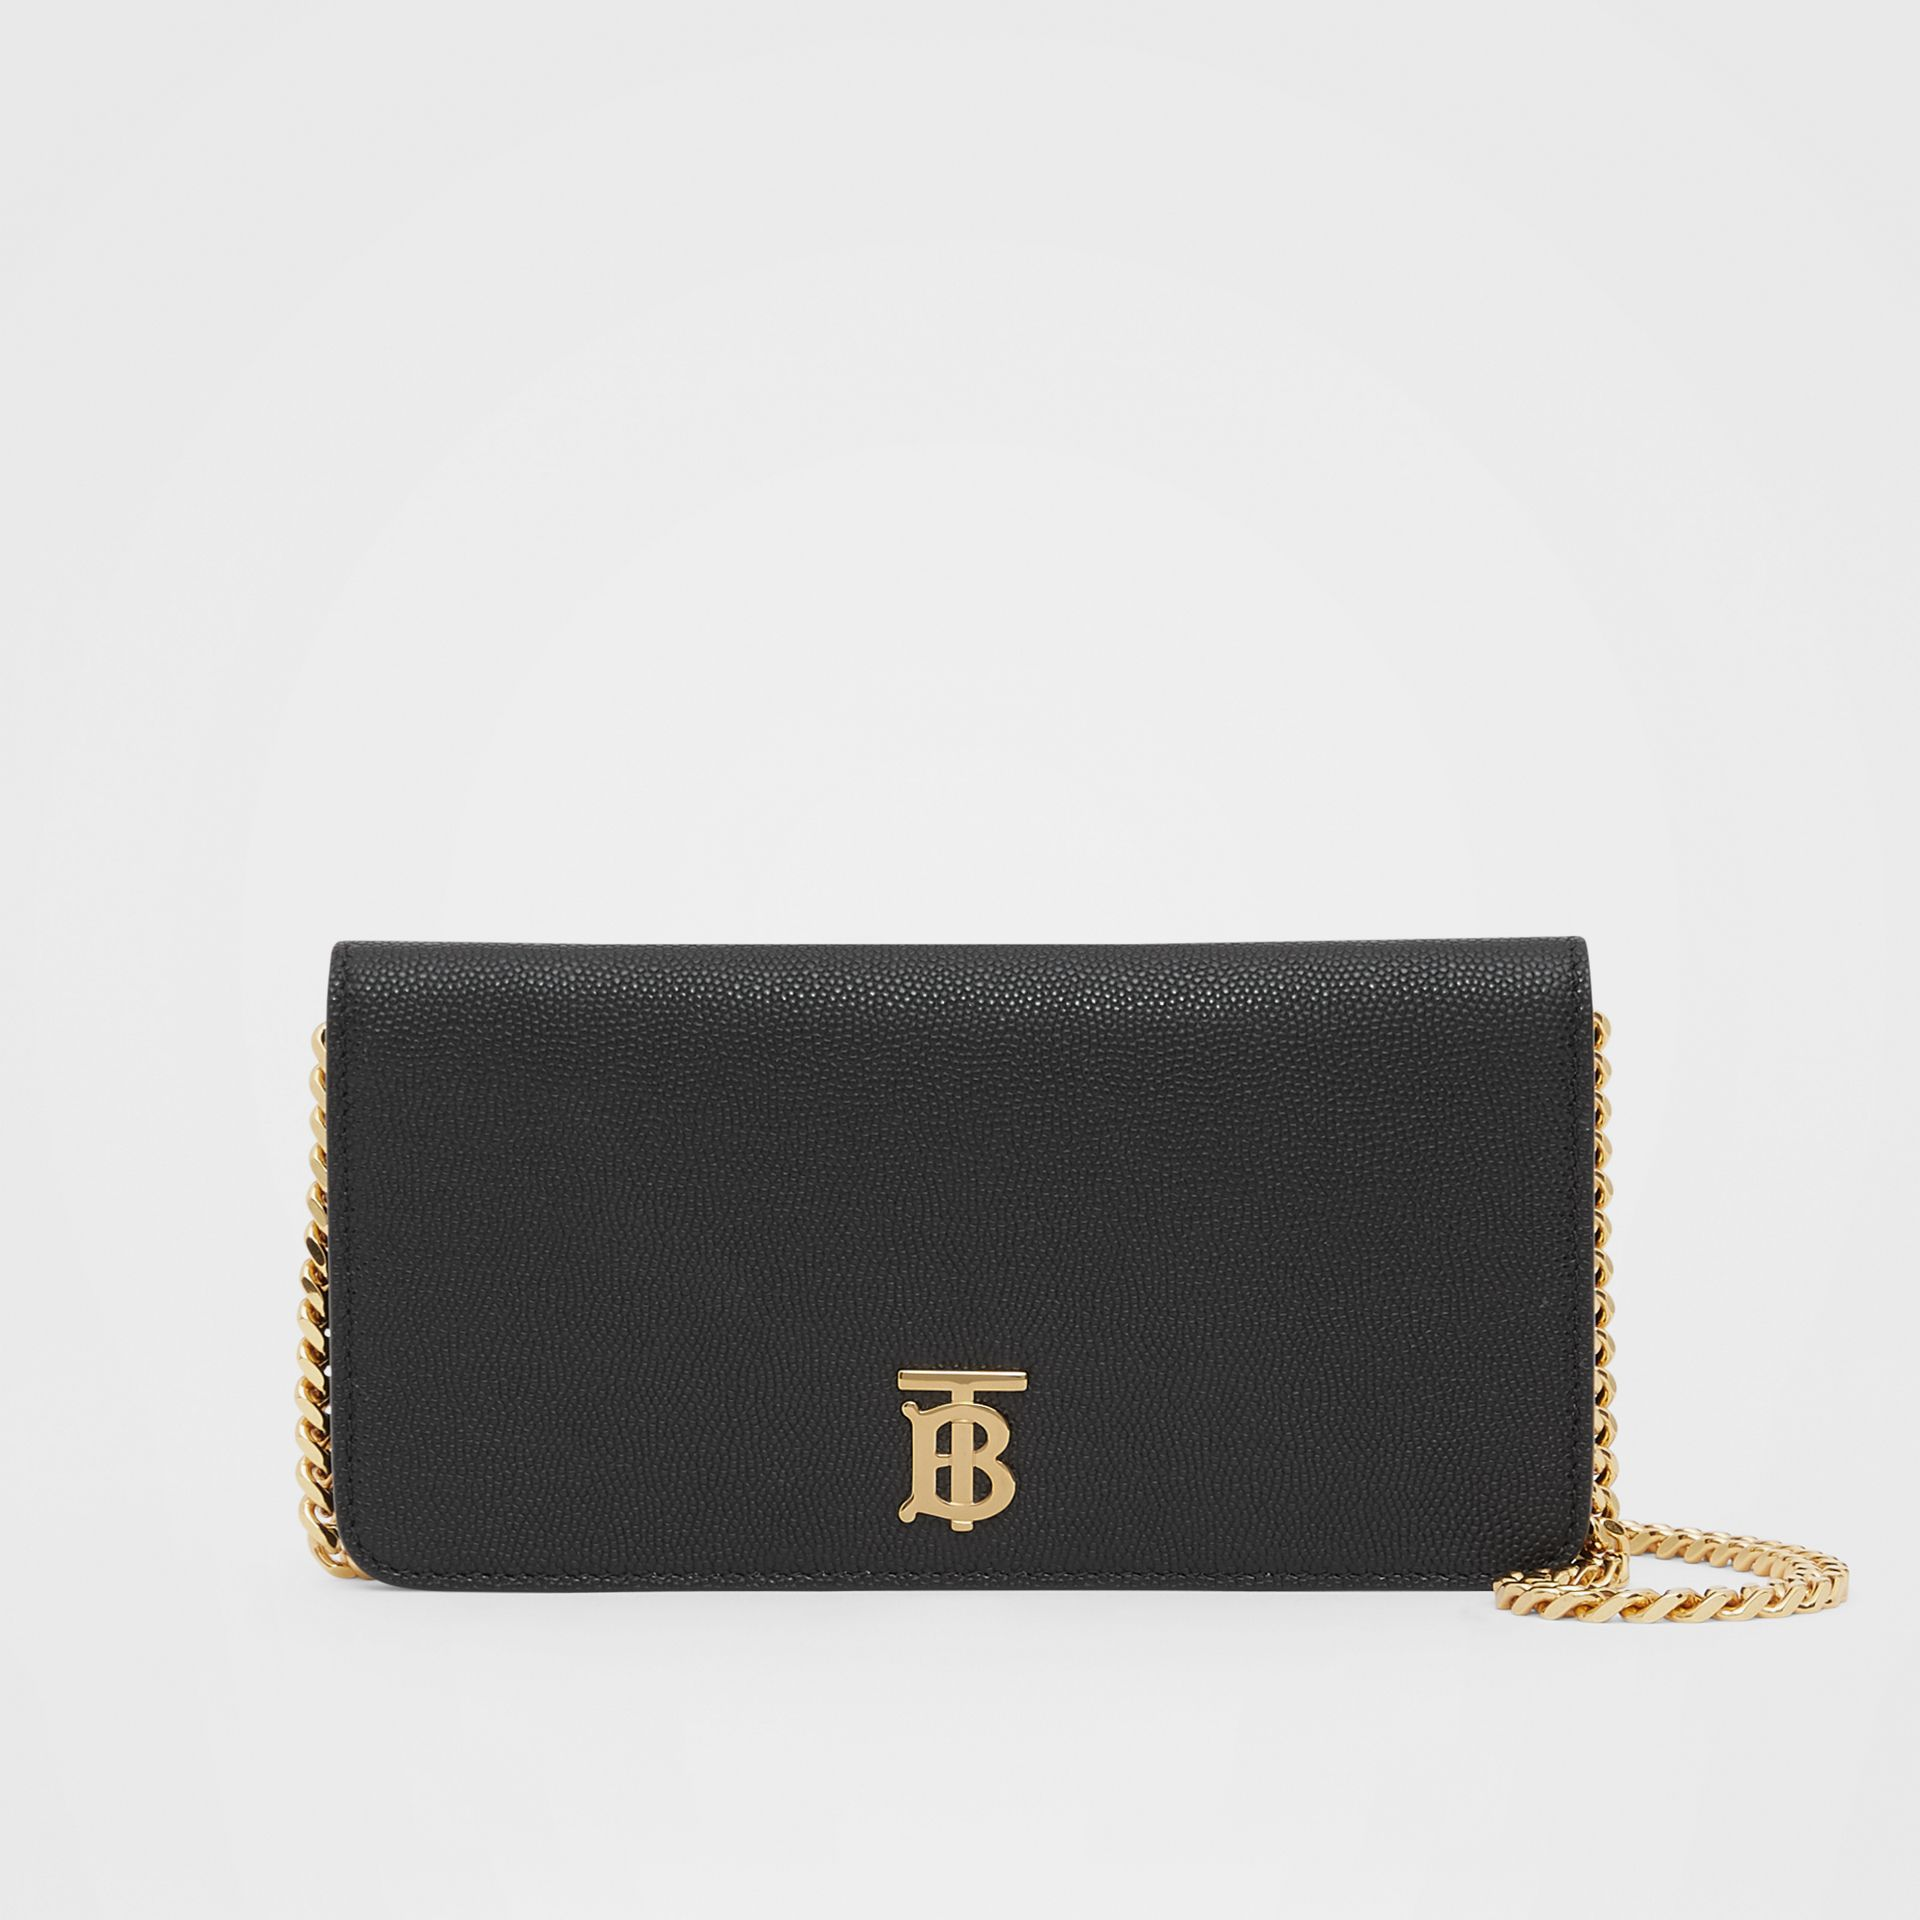 Grainy Leather Phone Wallet with Strap in Black - Women | Burberry - gallery image 0